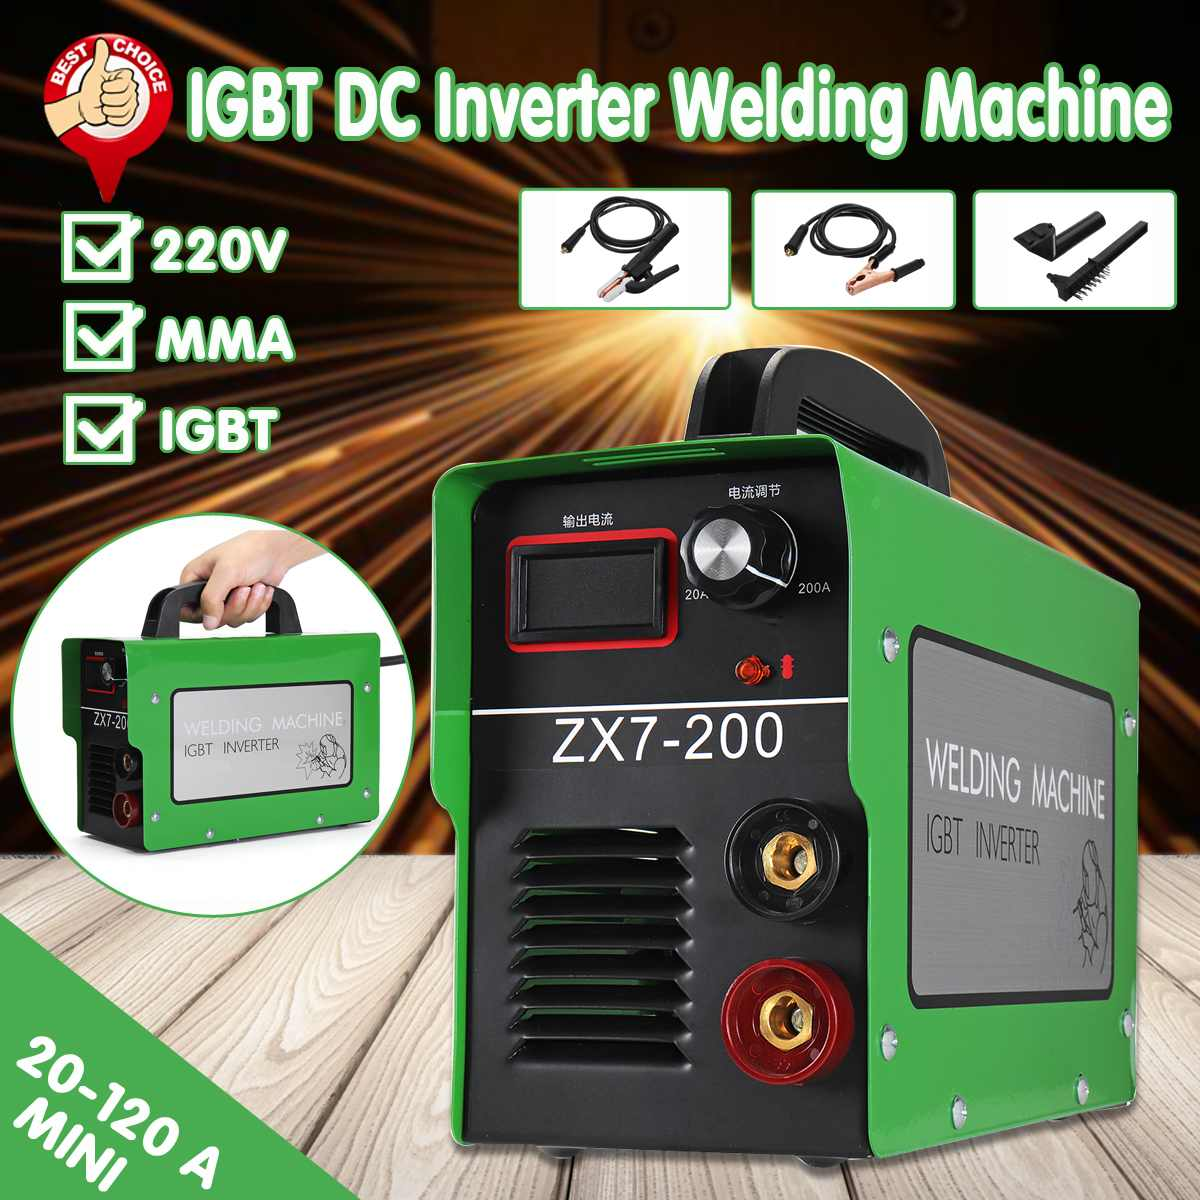 Portable EU Plug ZX7-200 4000W 3.5KVA Welding Machine IGBT Inverter Welding Tools Welding Machine AccessoriesPortable EU Plug ZX7-200 4000W 3.5KVA Welding Machine IGBT Inverter Welding Tools Welding Machine Accessories